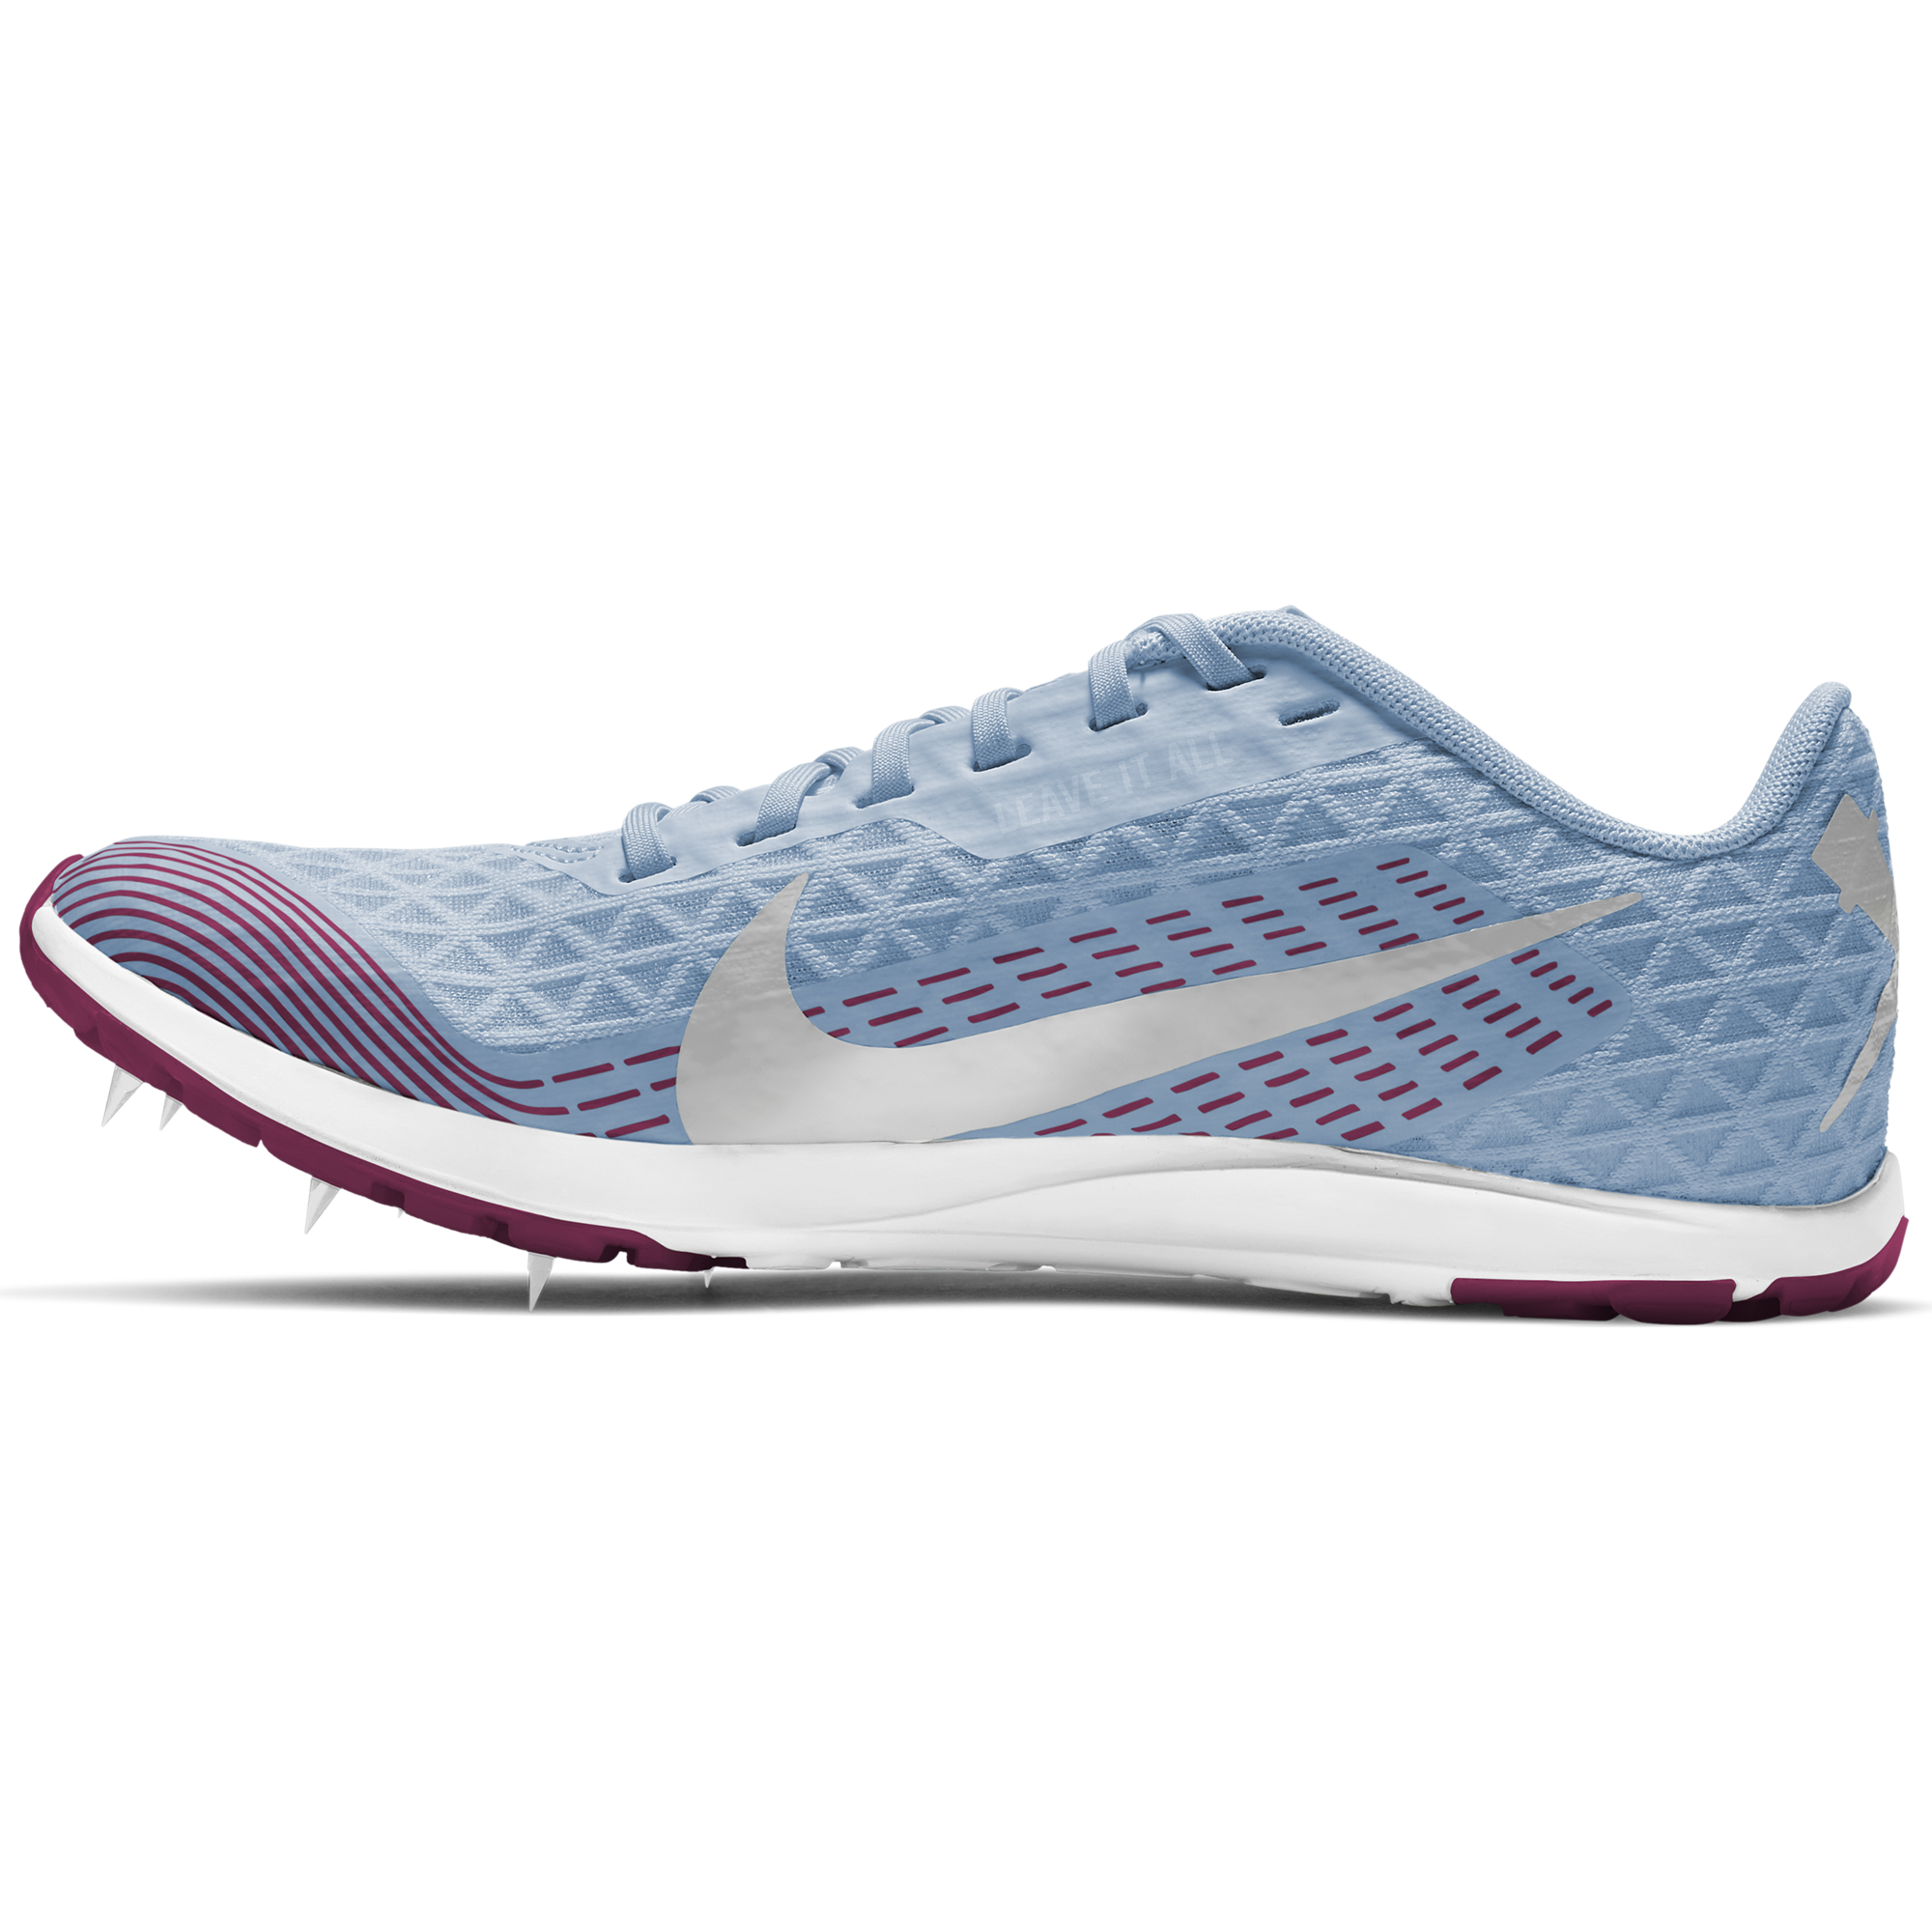 Zoom Rival XC (401 - leche blue/silver-true berry)